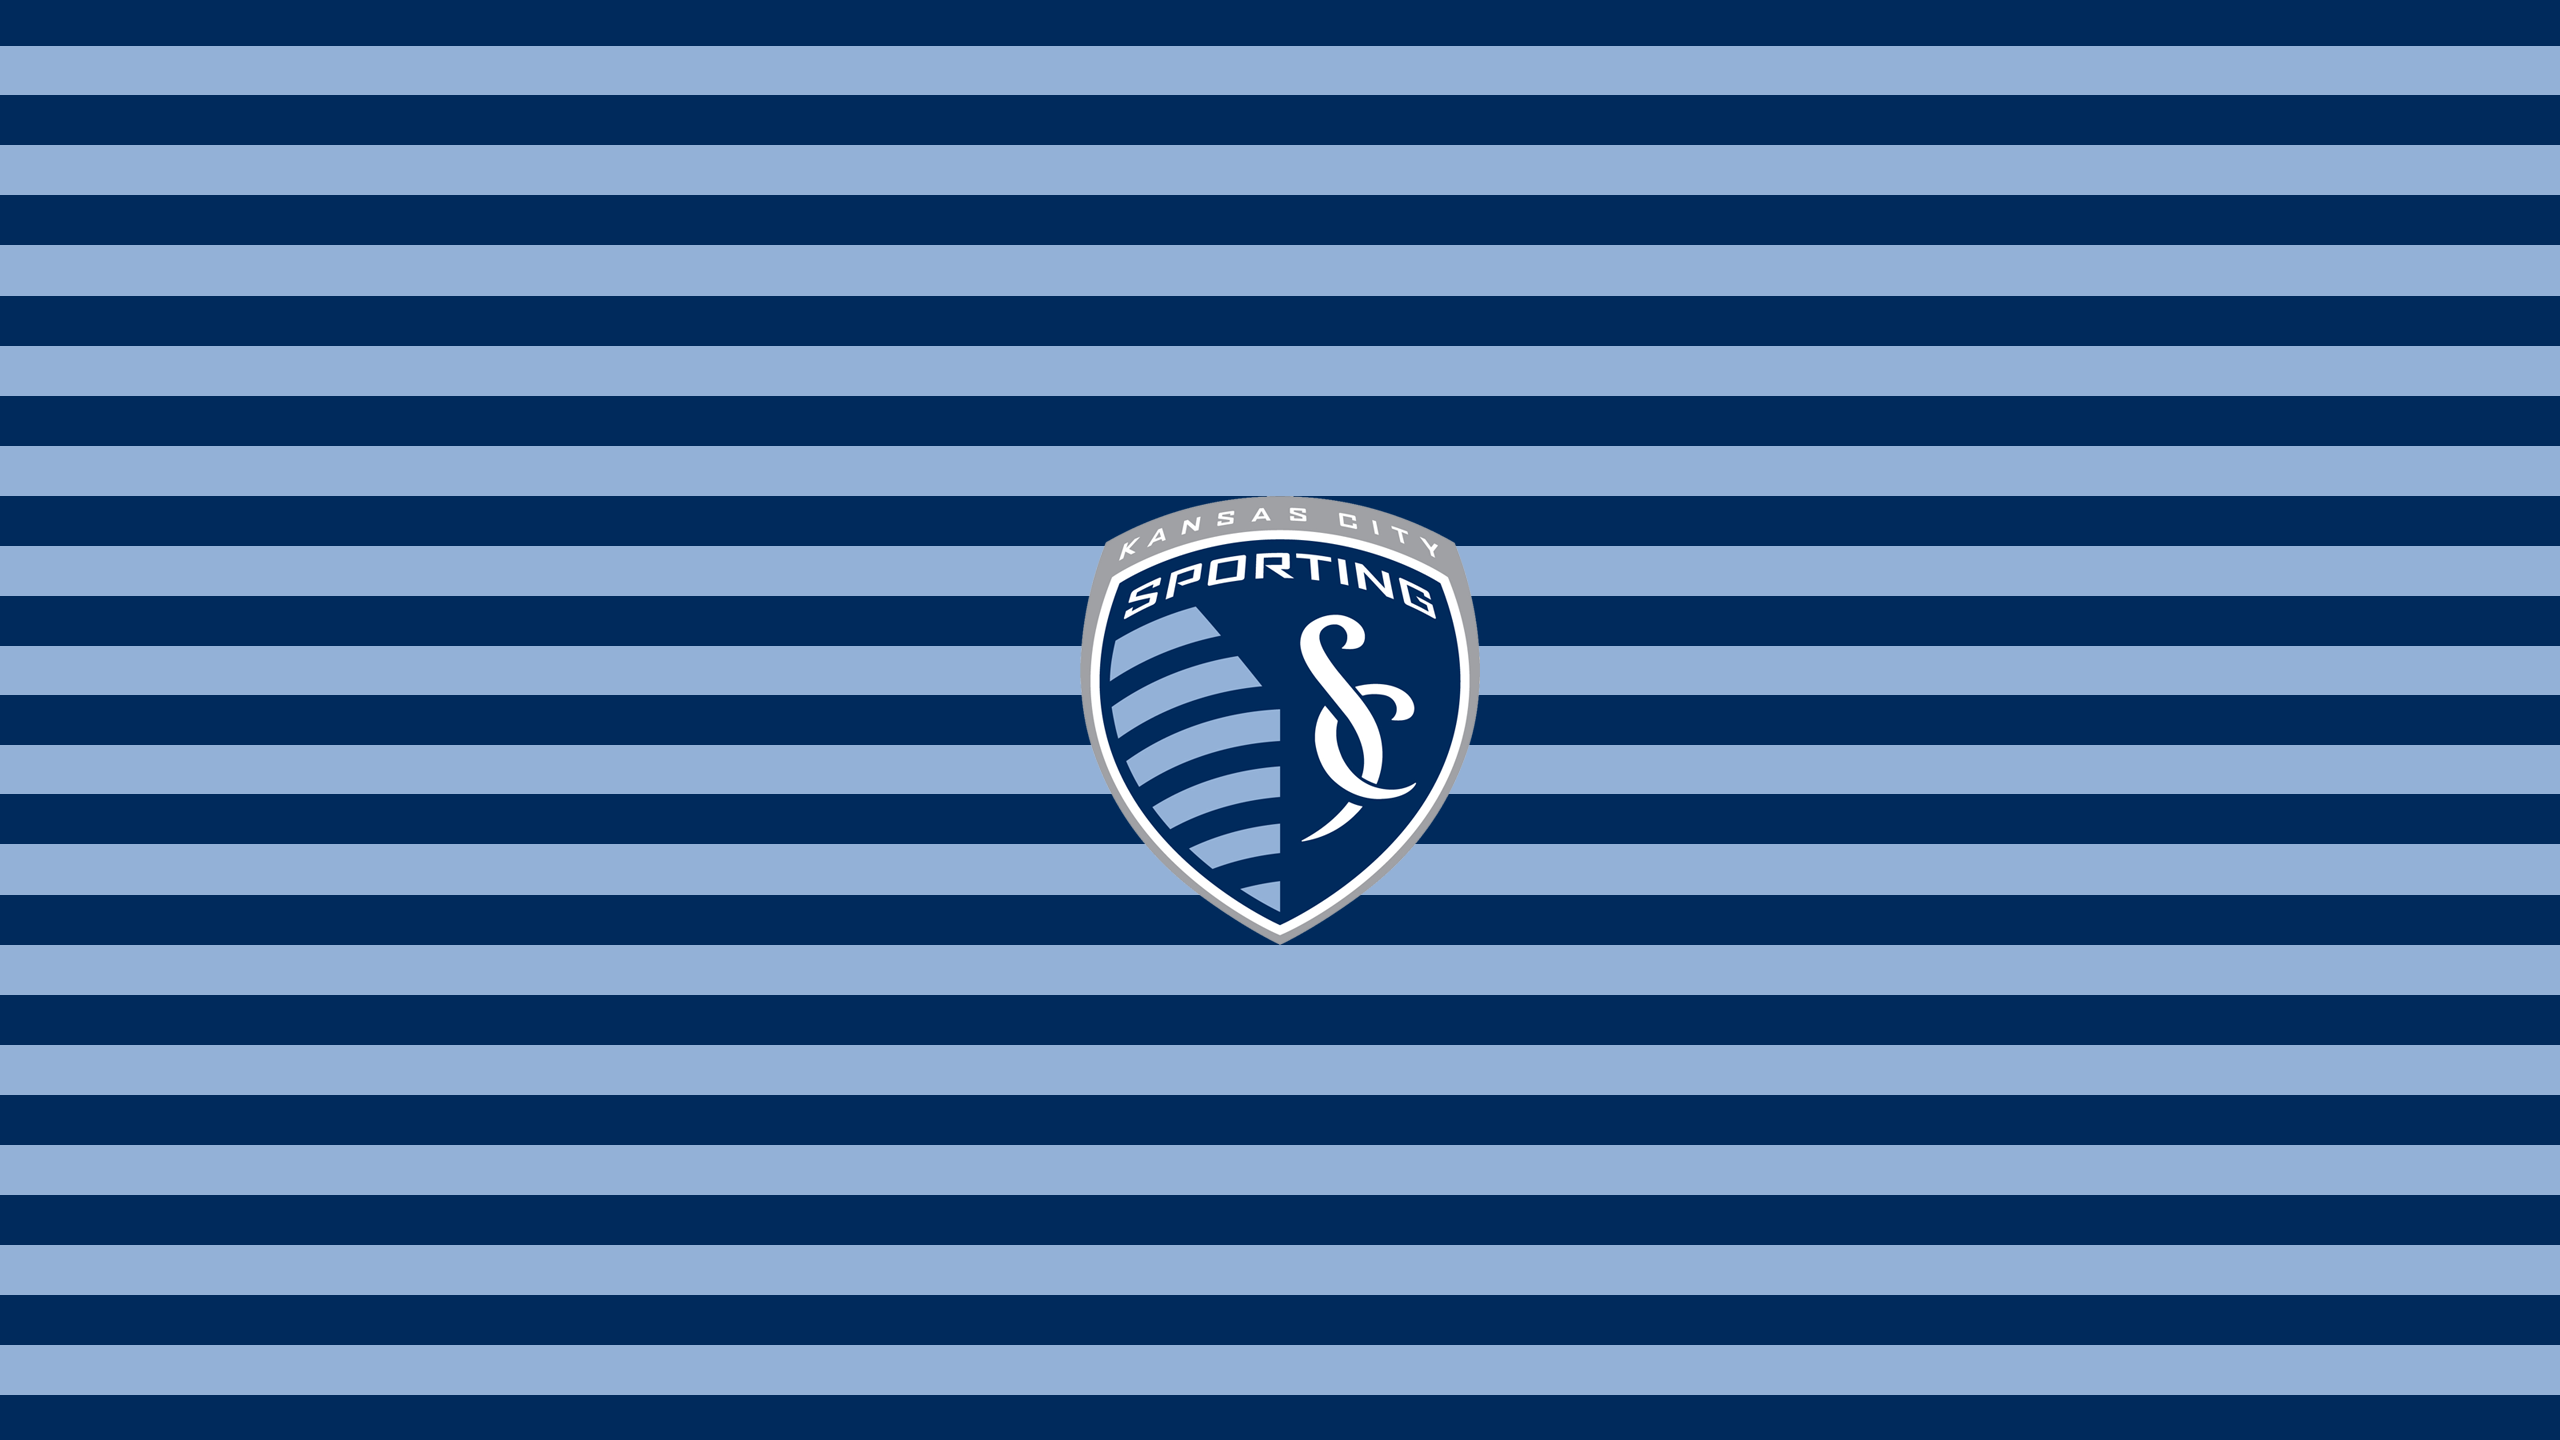 png 2560x1440 Sporting kansas city computer background - Logo Sporting Kansas City PNG